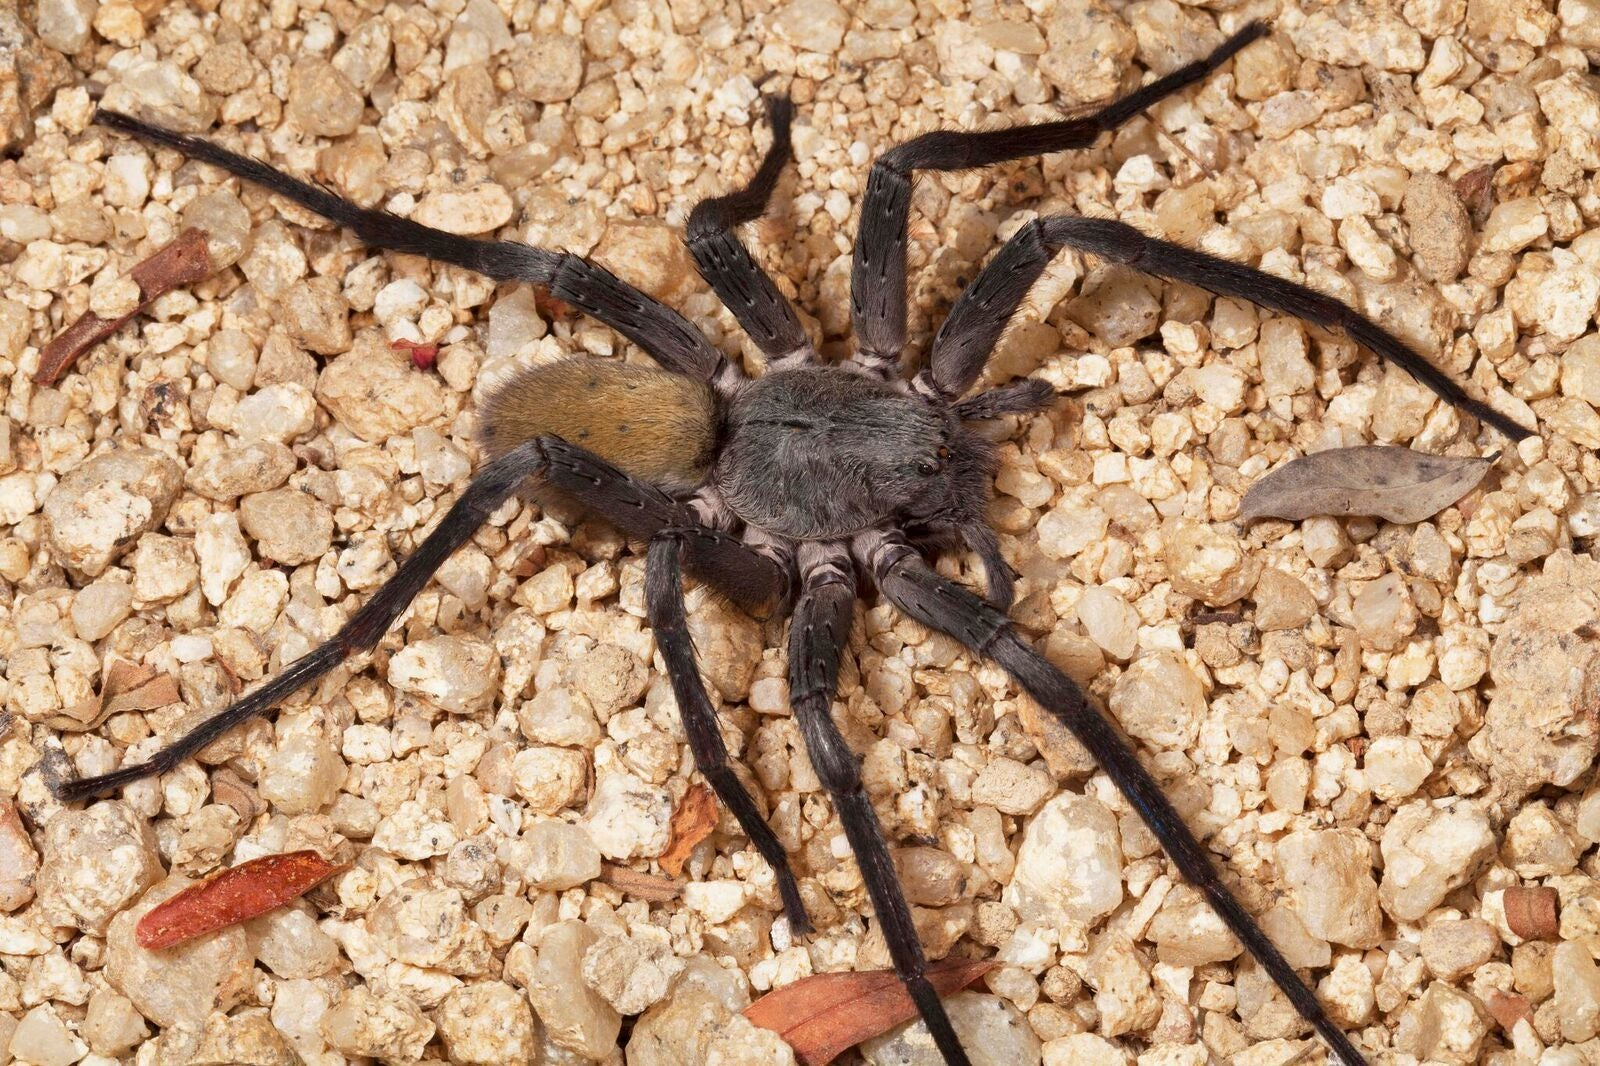 This New Mexican Cave Spider Is Ridiculous